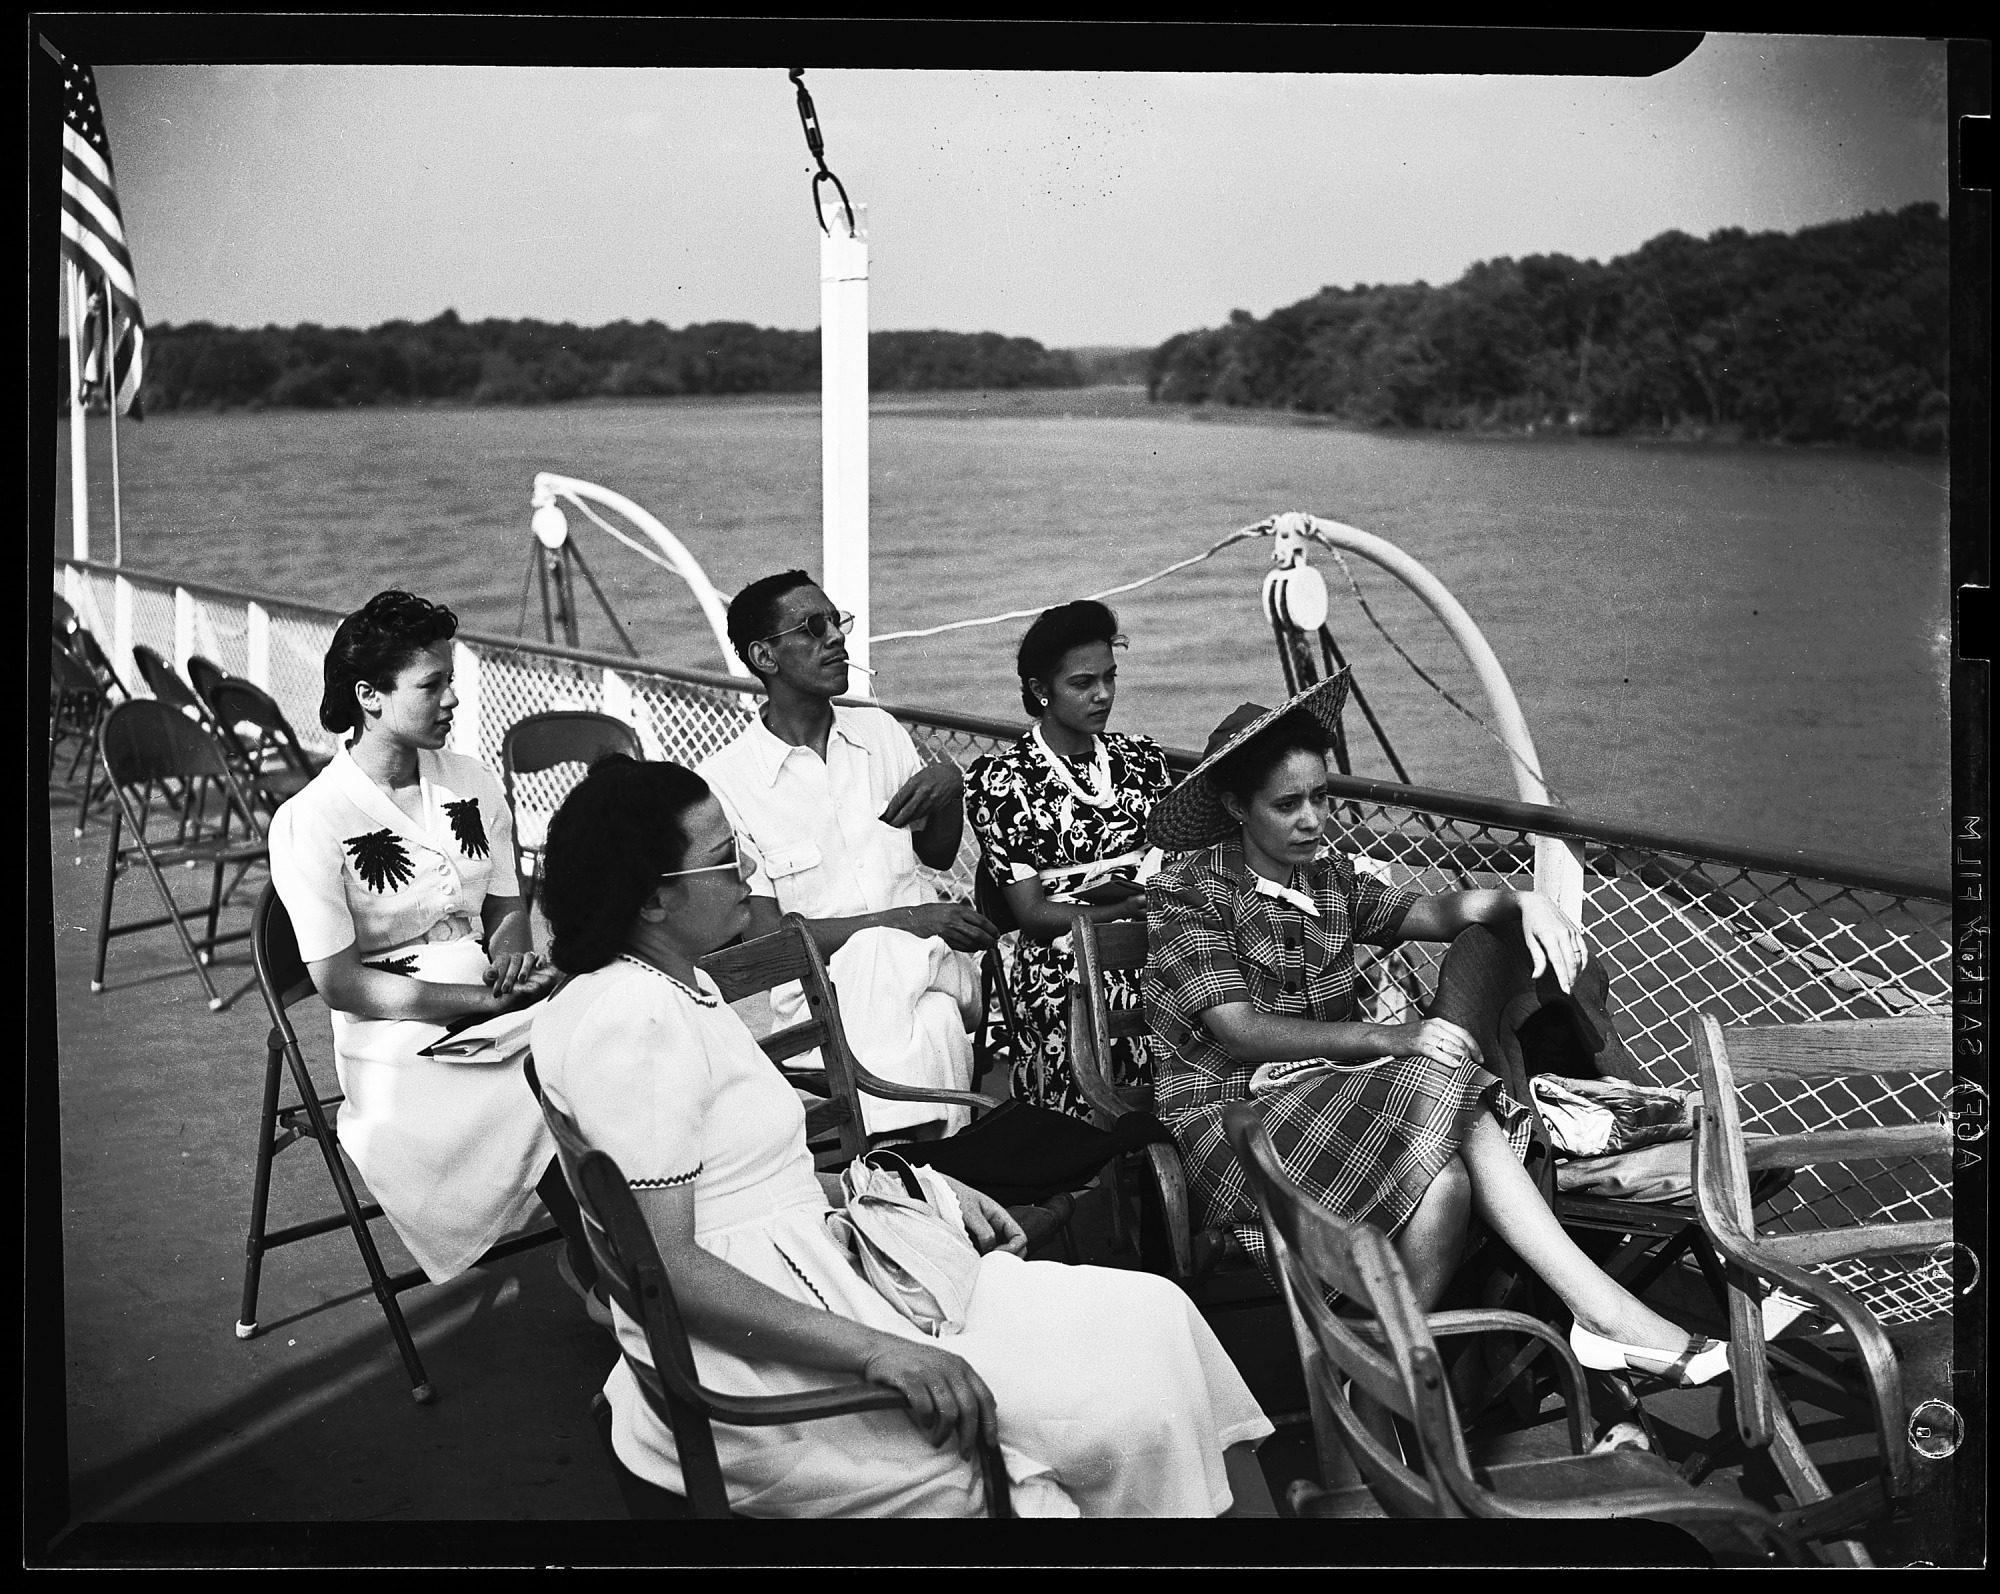 images for H.U Summer Boatride 1941 and Class view cellulose acetate photonegative